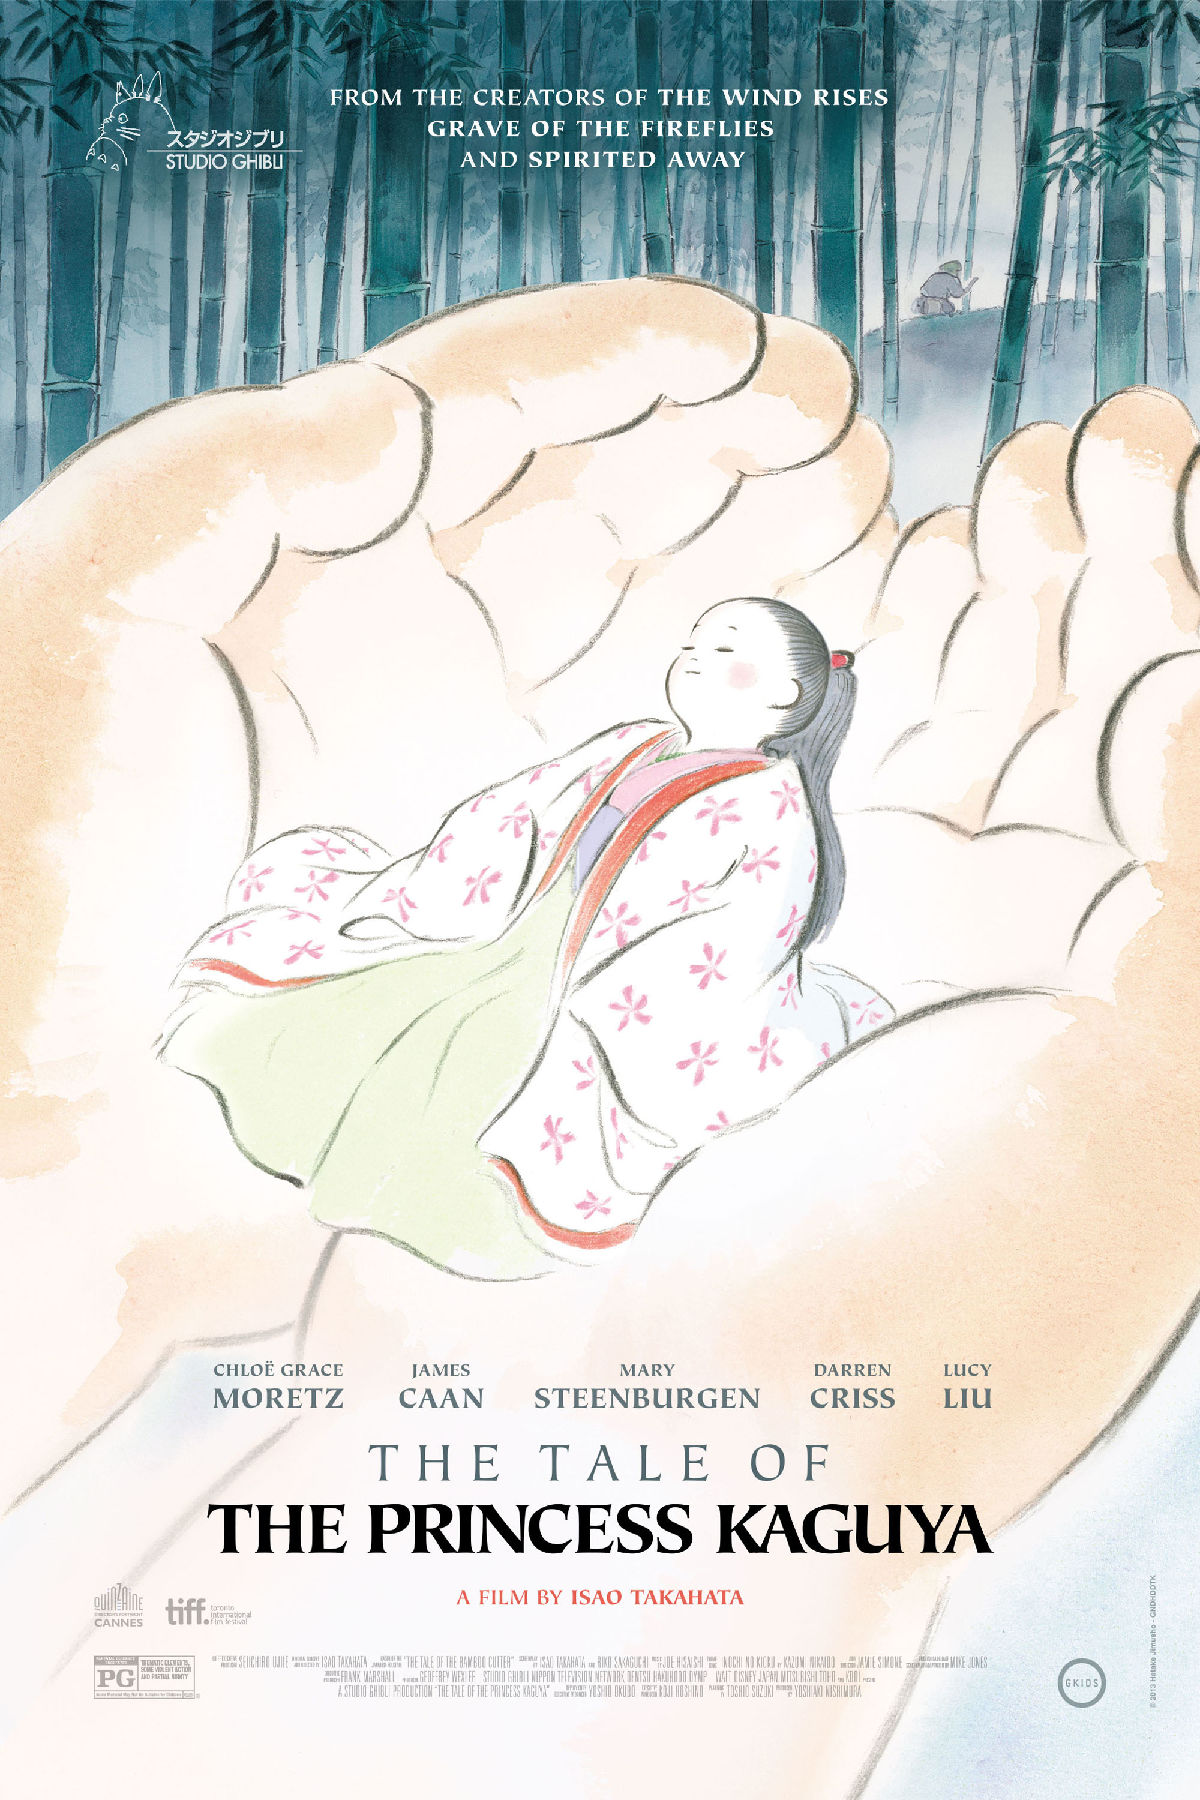 'The Tale of Princess Kaguya' movie poster